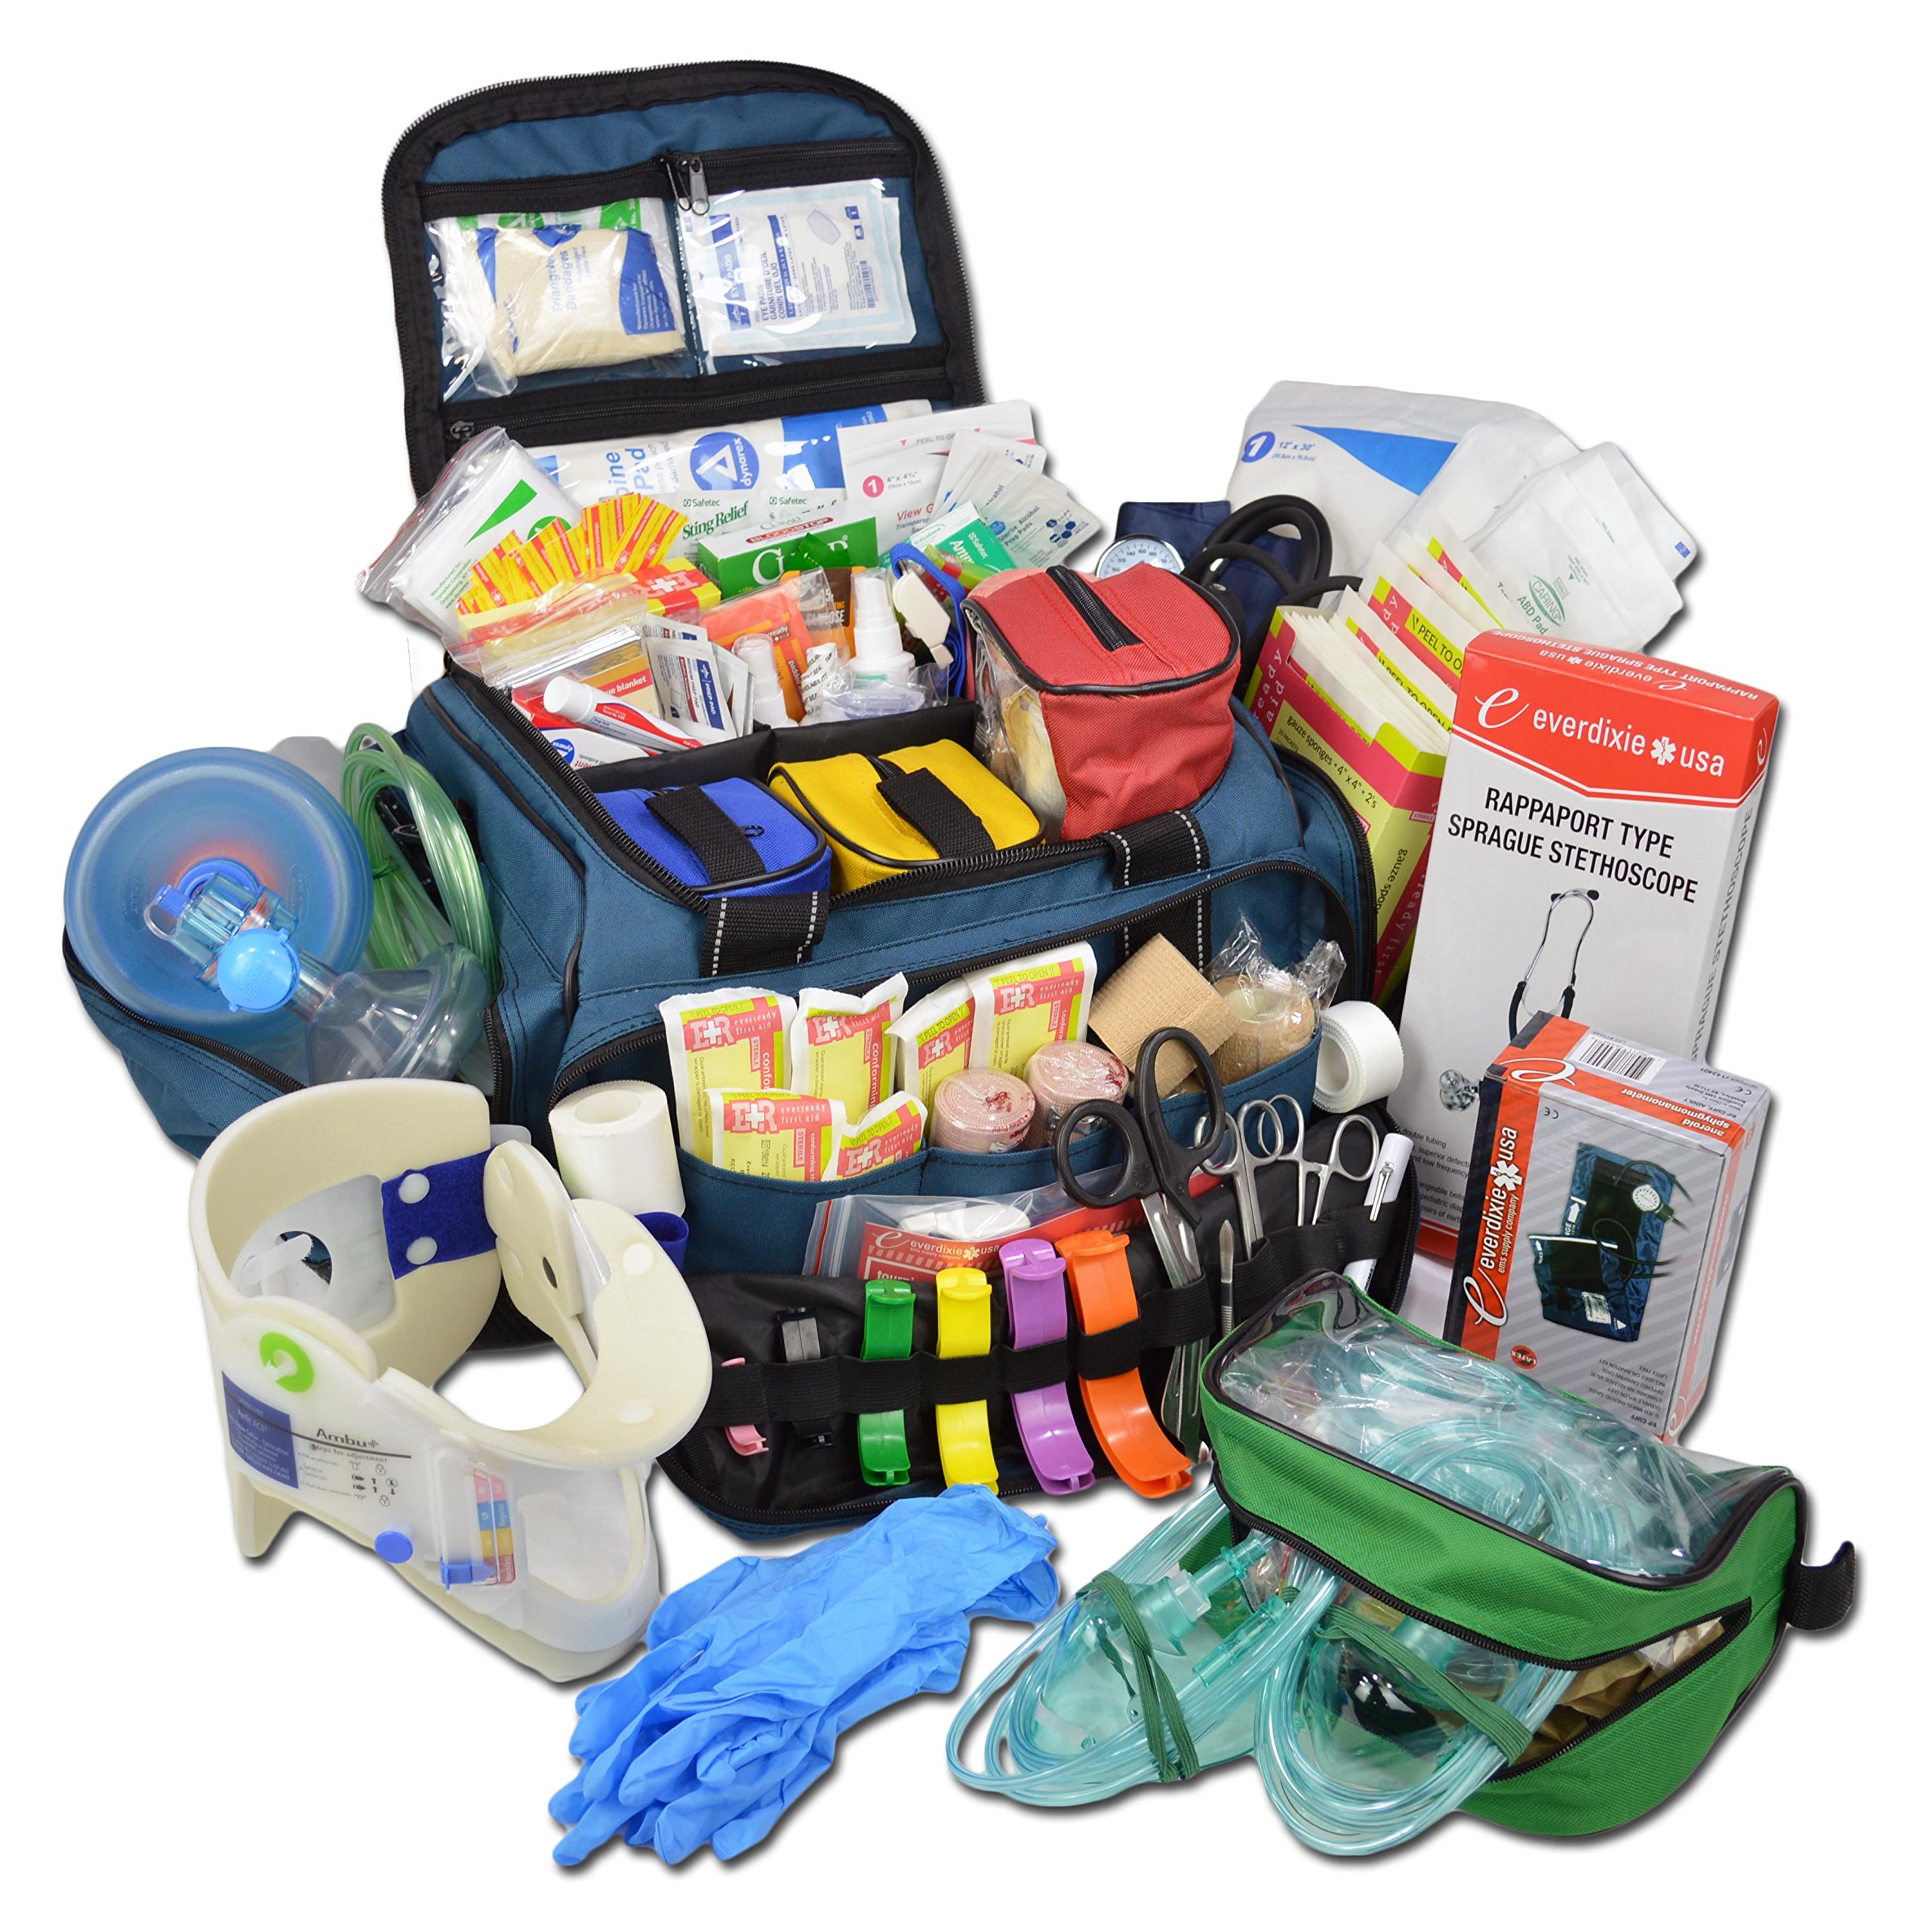 Lightning X Extra Large Medic First Responder EMT Trauma Bag Stocked First Aid Deluxe Fill Kit C (Blue) by Lightning X Products